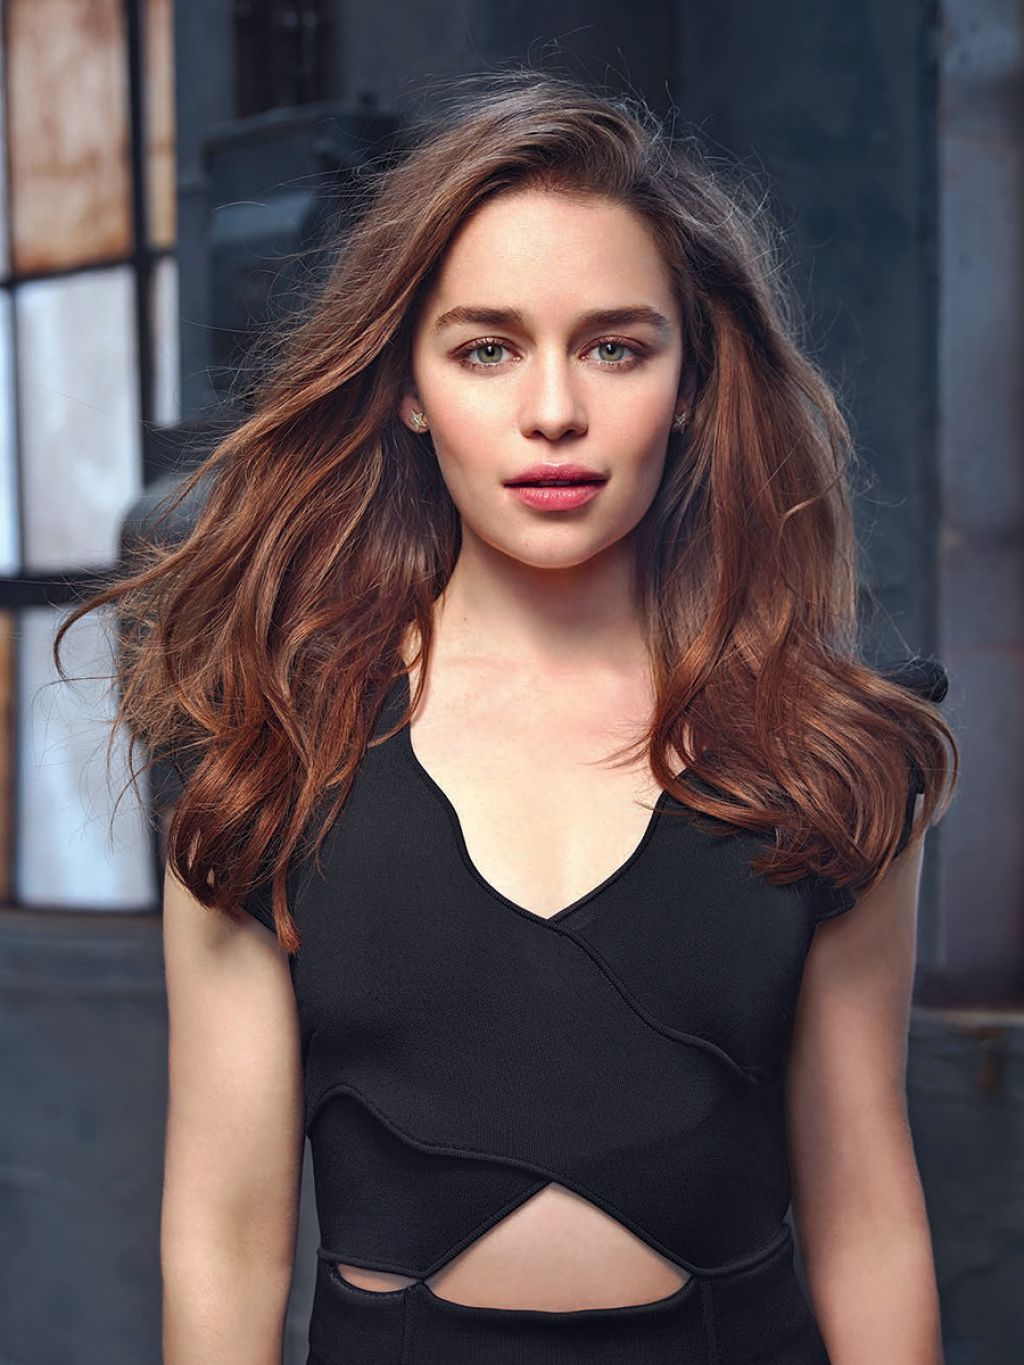 Emilia Clarke U2013 Photoshoot For Io Donna Magazine July 2015